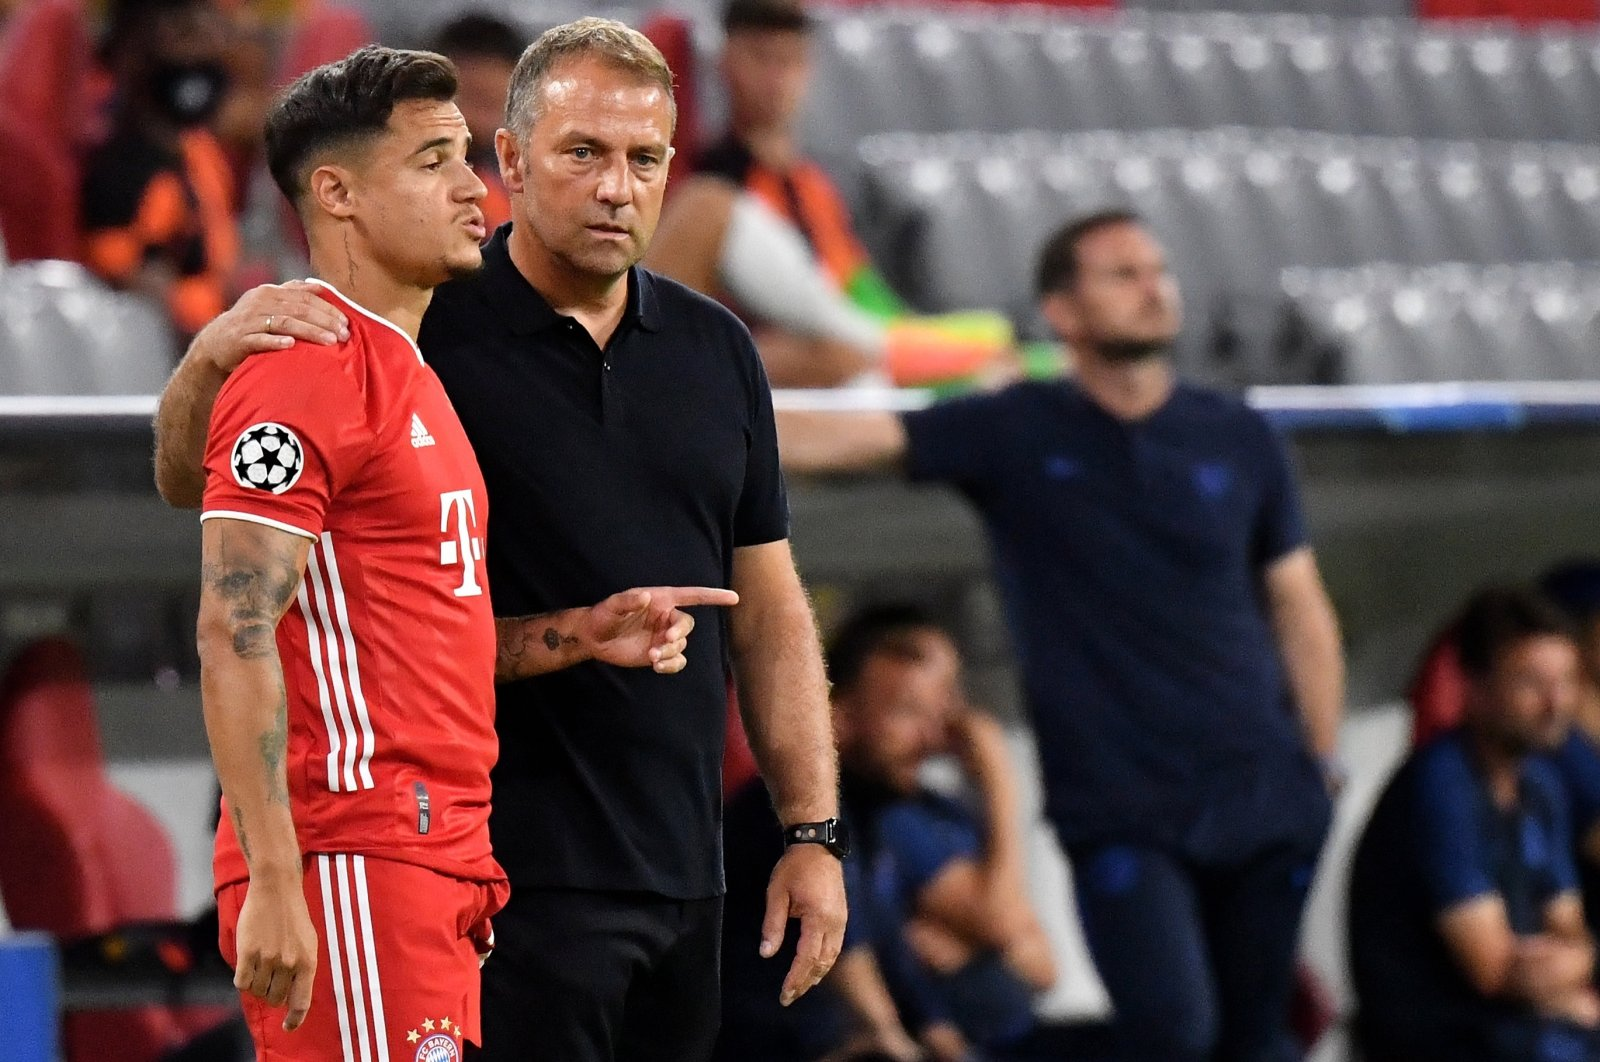 Bayern Munich coach Hansi Flick (R) gives directions to Philippe Coutinho during a UEFA Champions League Round match against Chelsea in Munich, Germany, Aug. 8, 2020.  (EPA Photo)